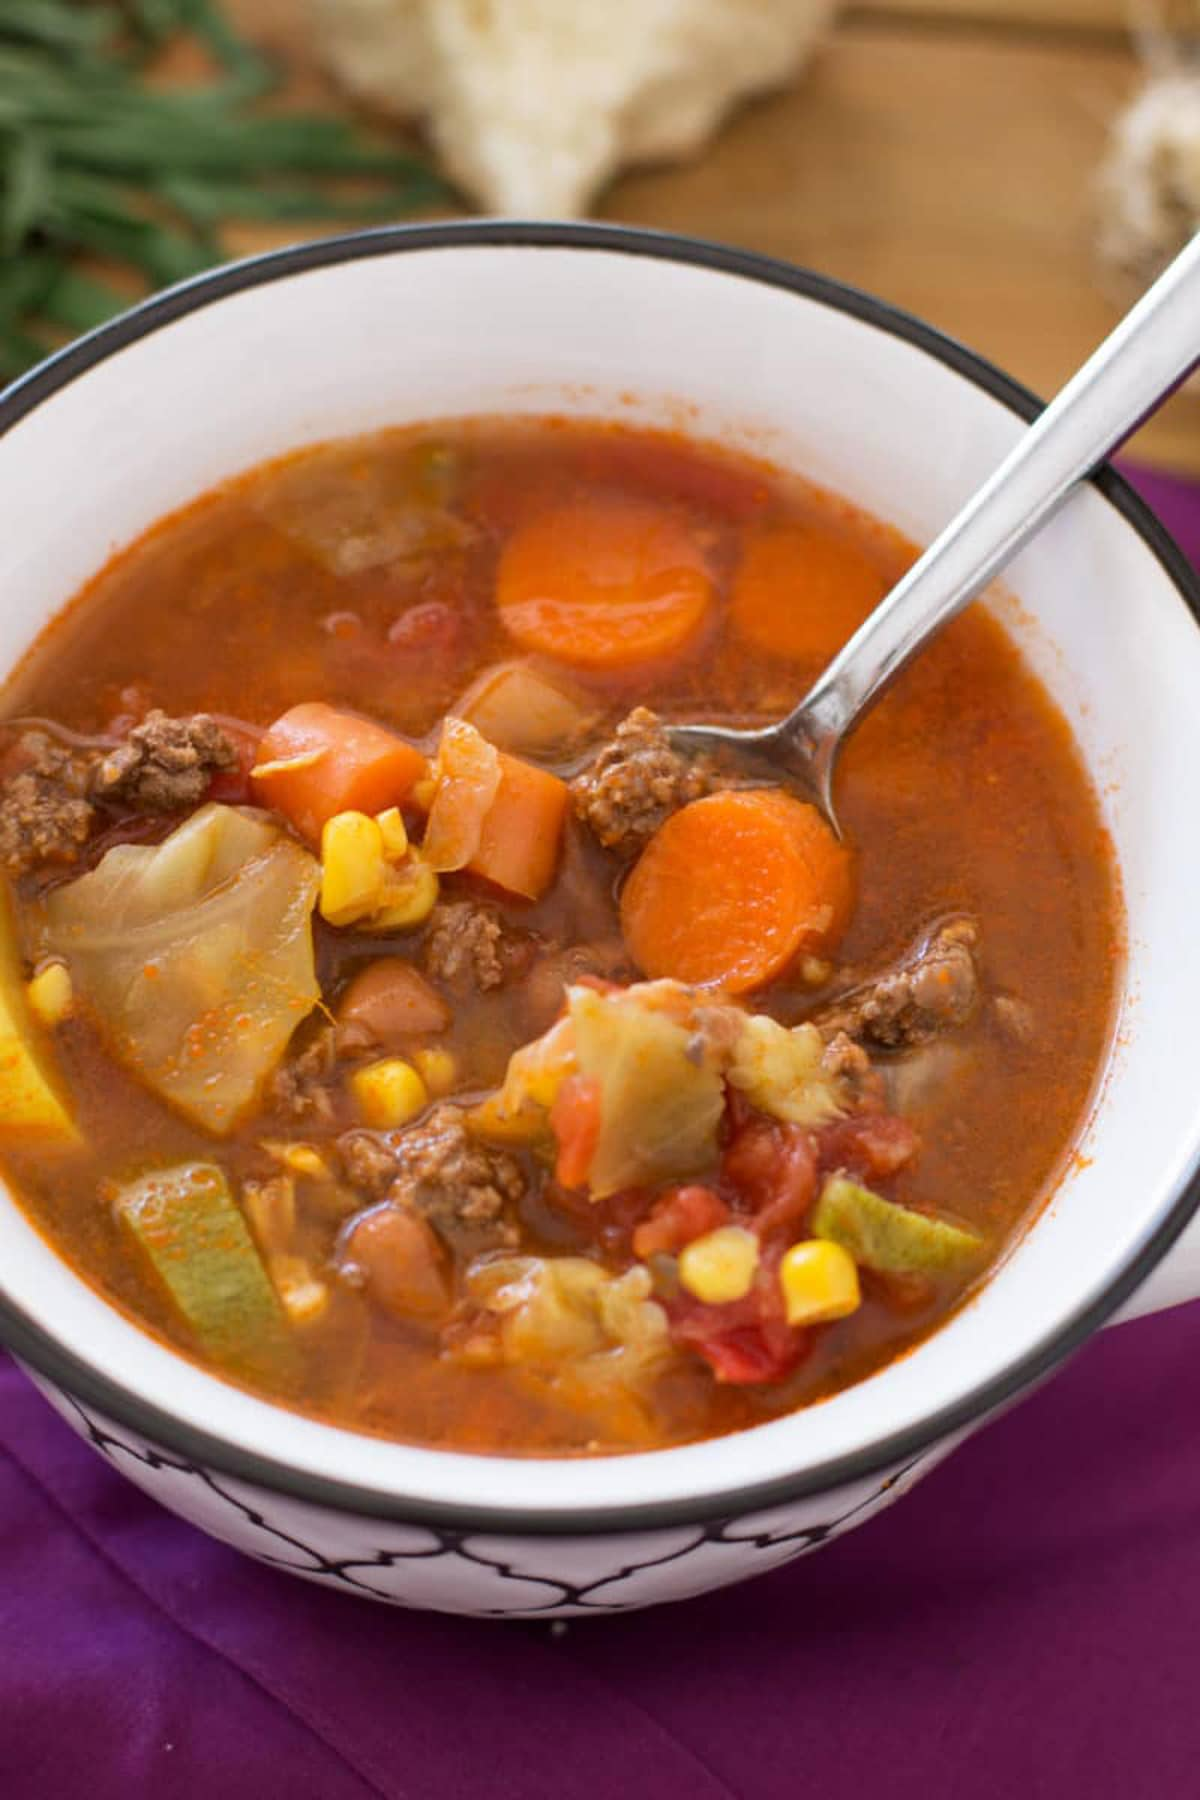 Spoonful of Poor Man's Soup in a white bowl containing cabbage, carrots, corn and tomatoes.